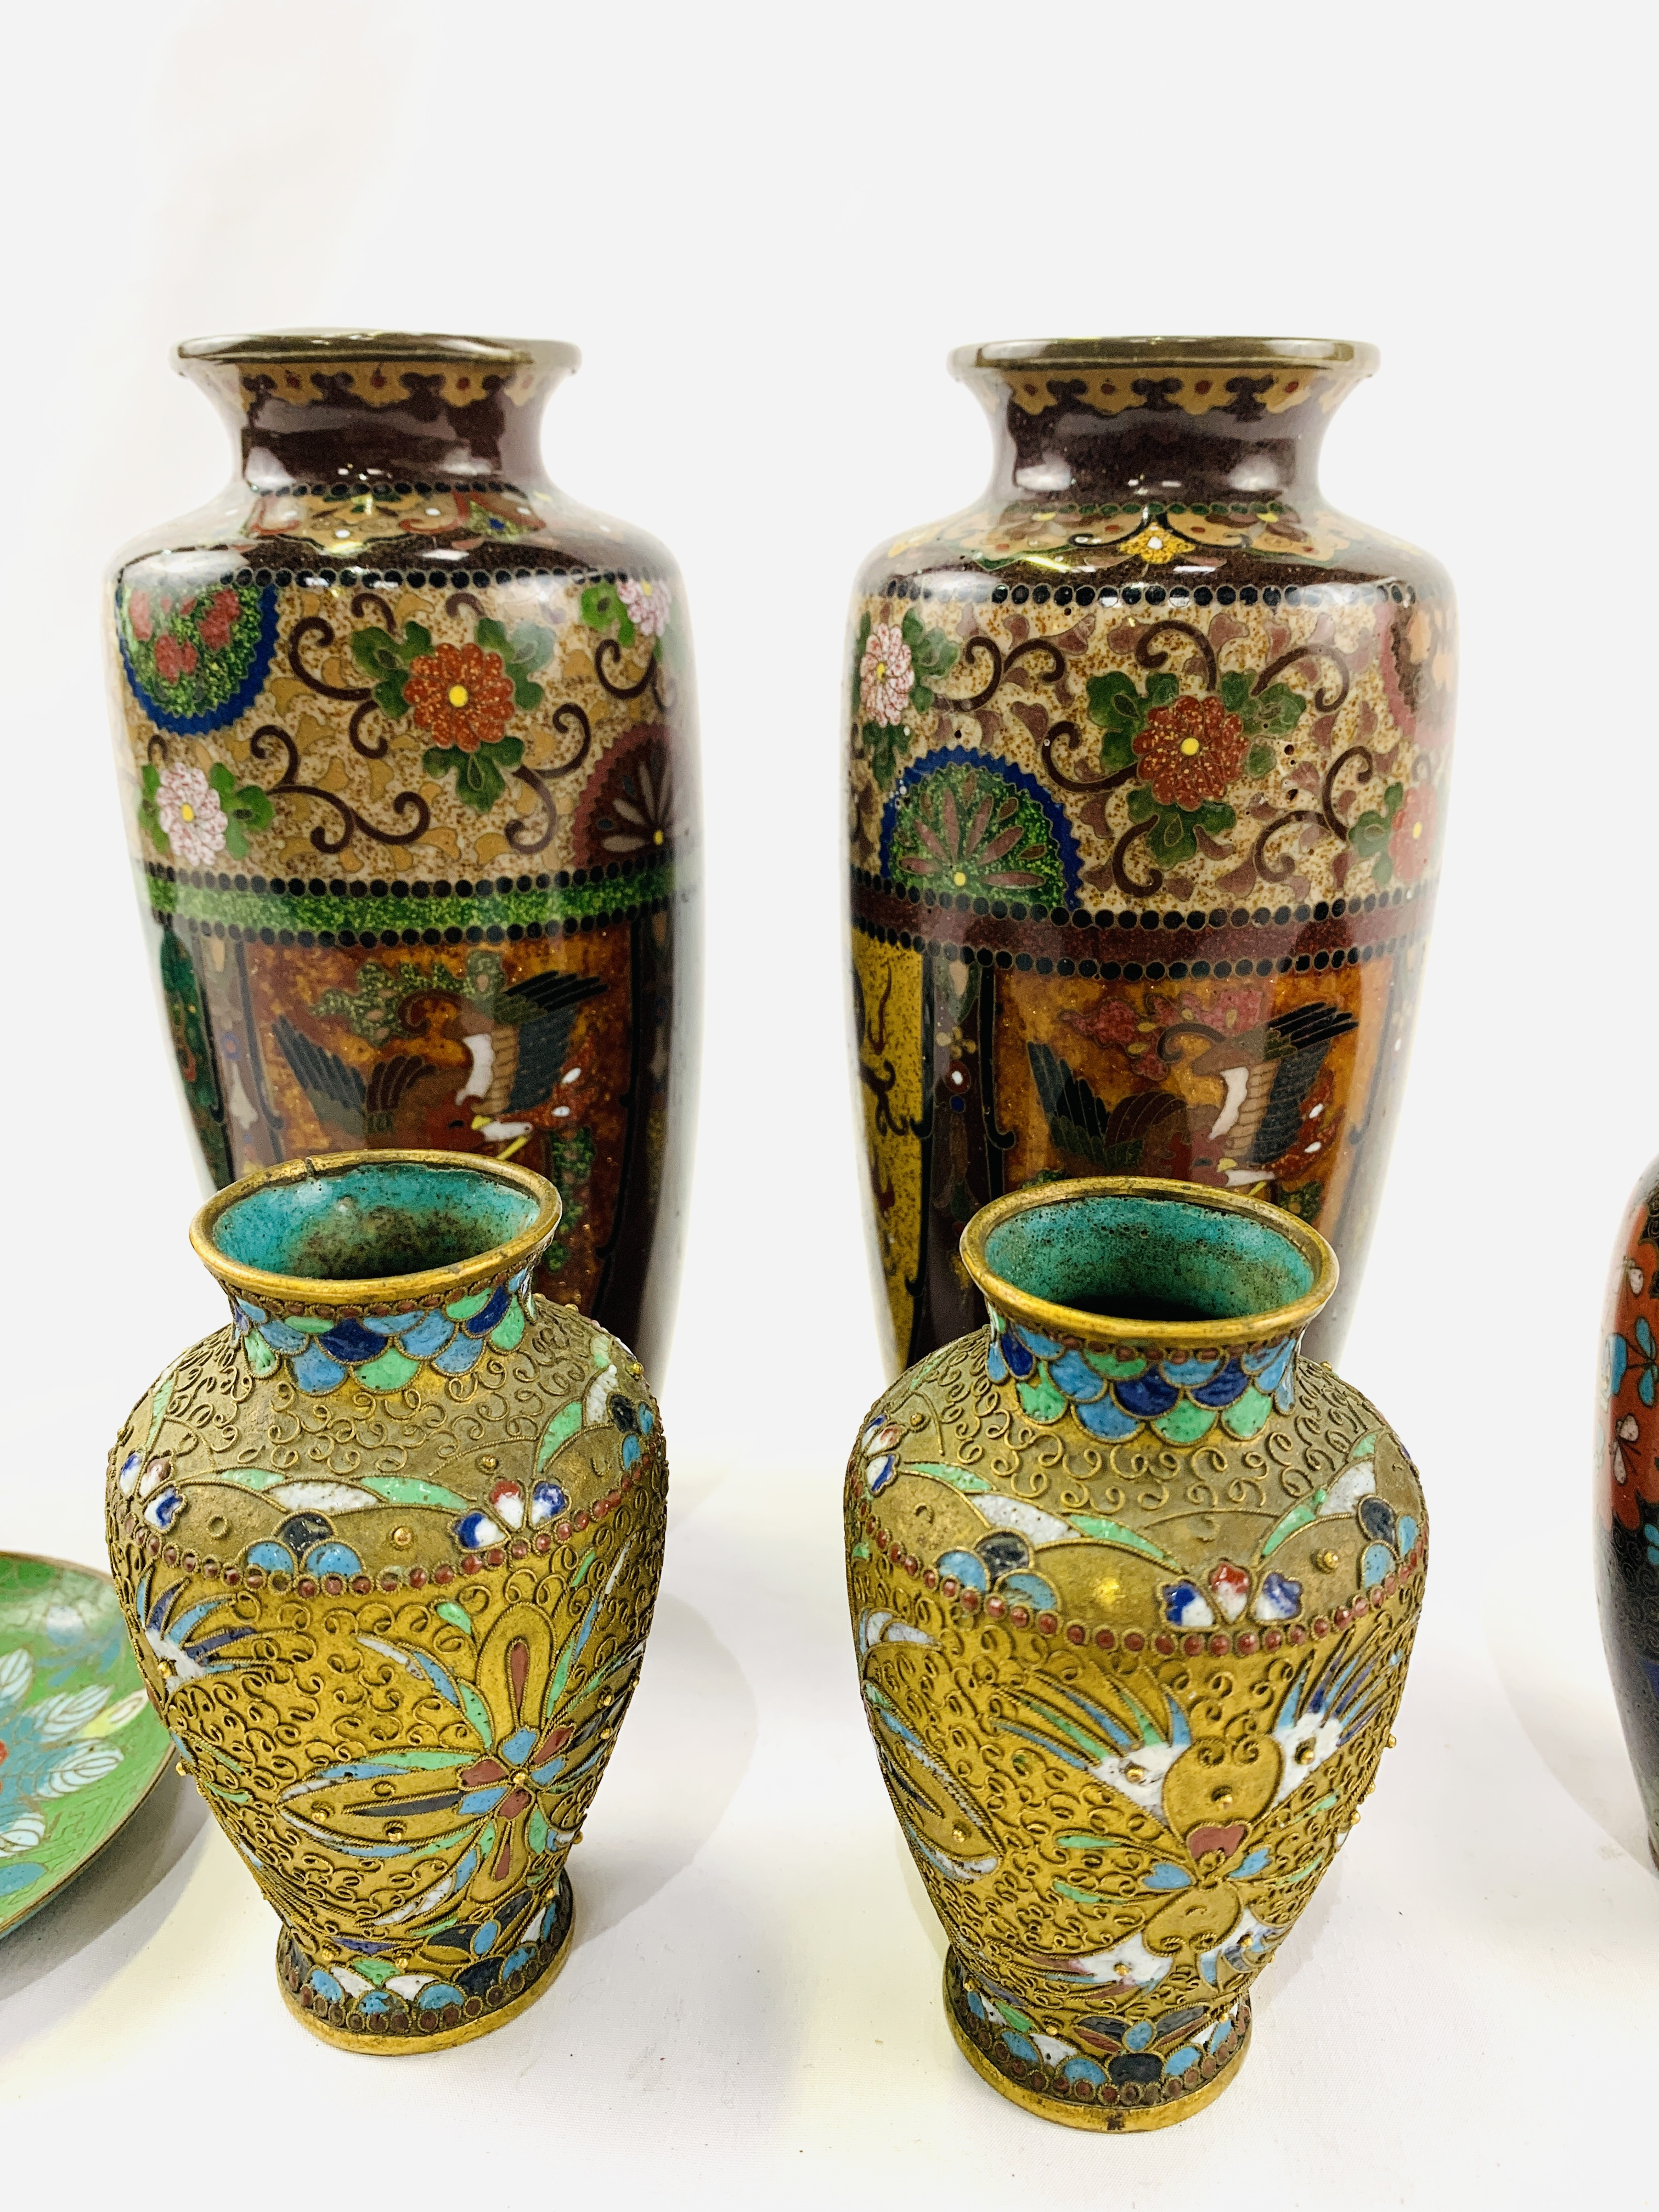 Collection of cloisonné objects - Image 2 of 8